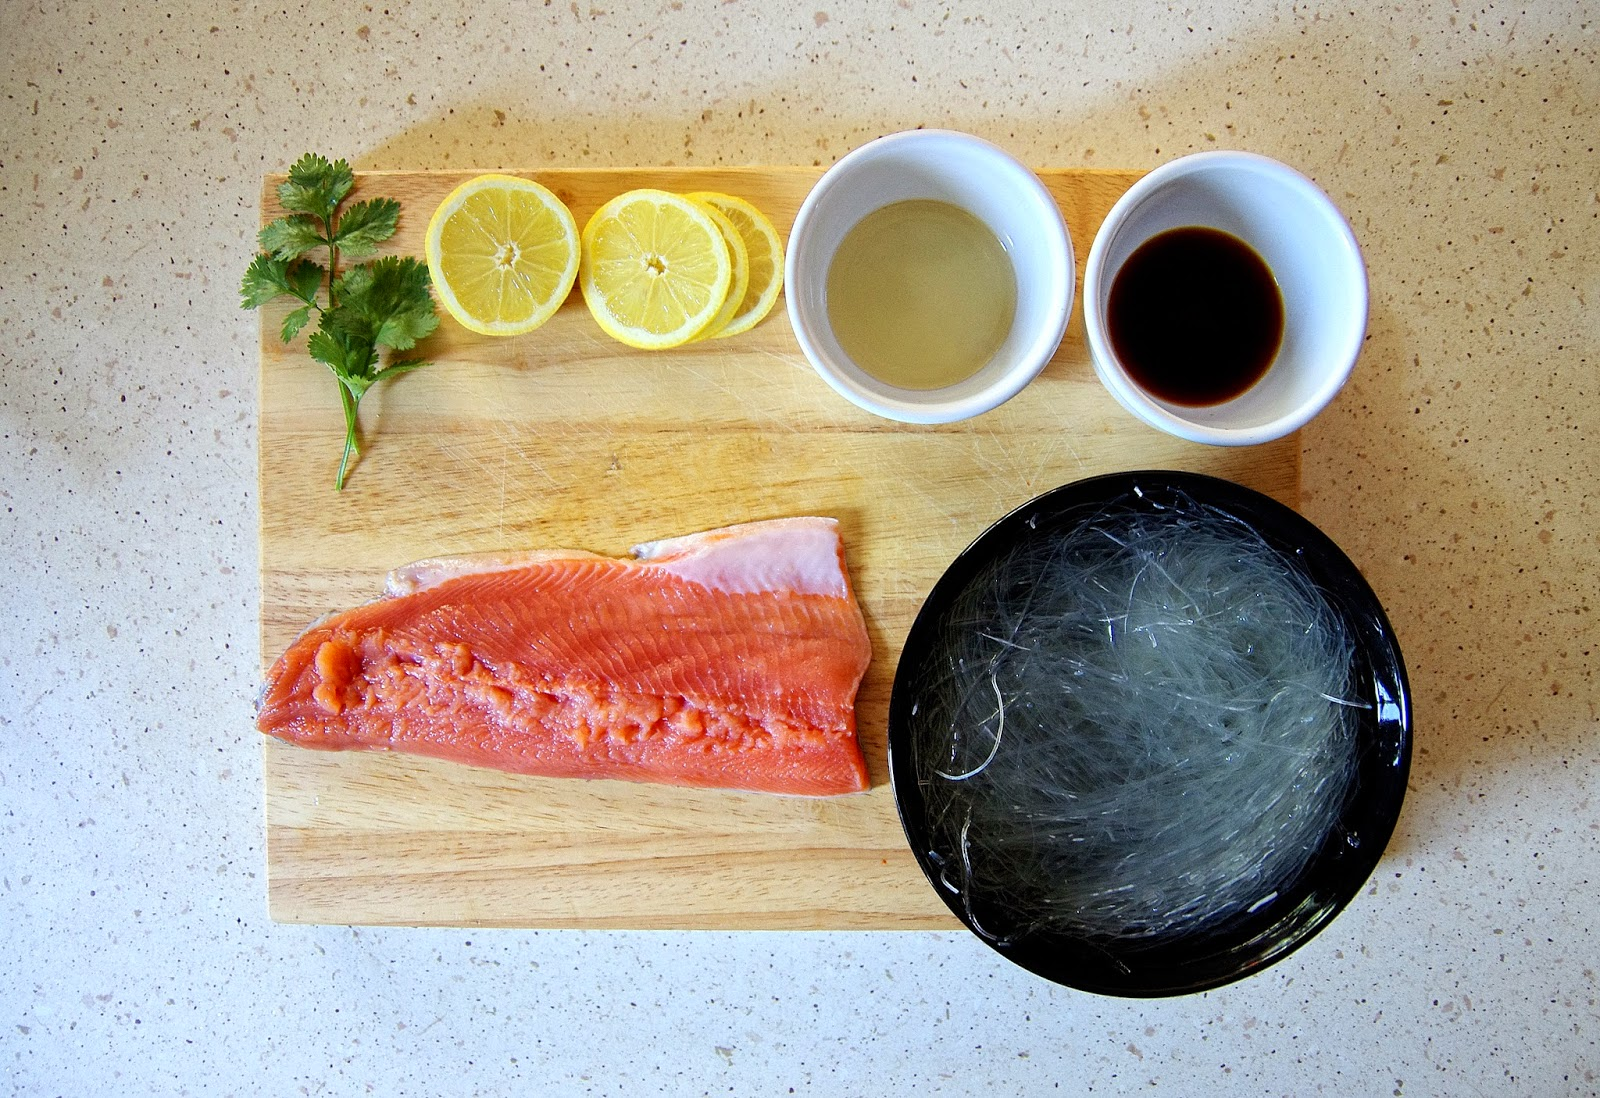 Recipe: Salmon Trout In Paper Parcels